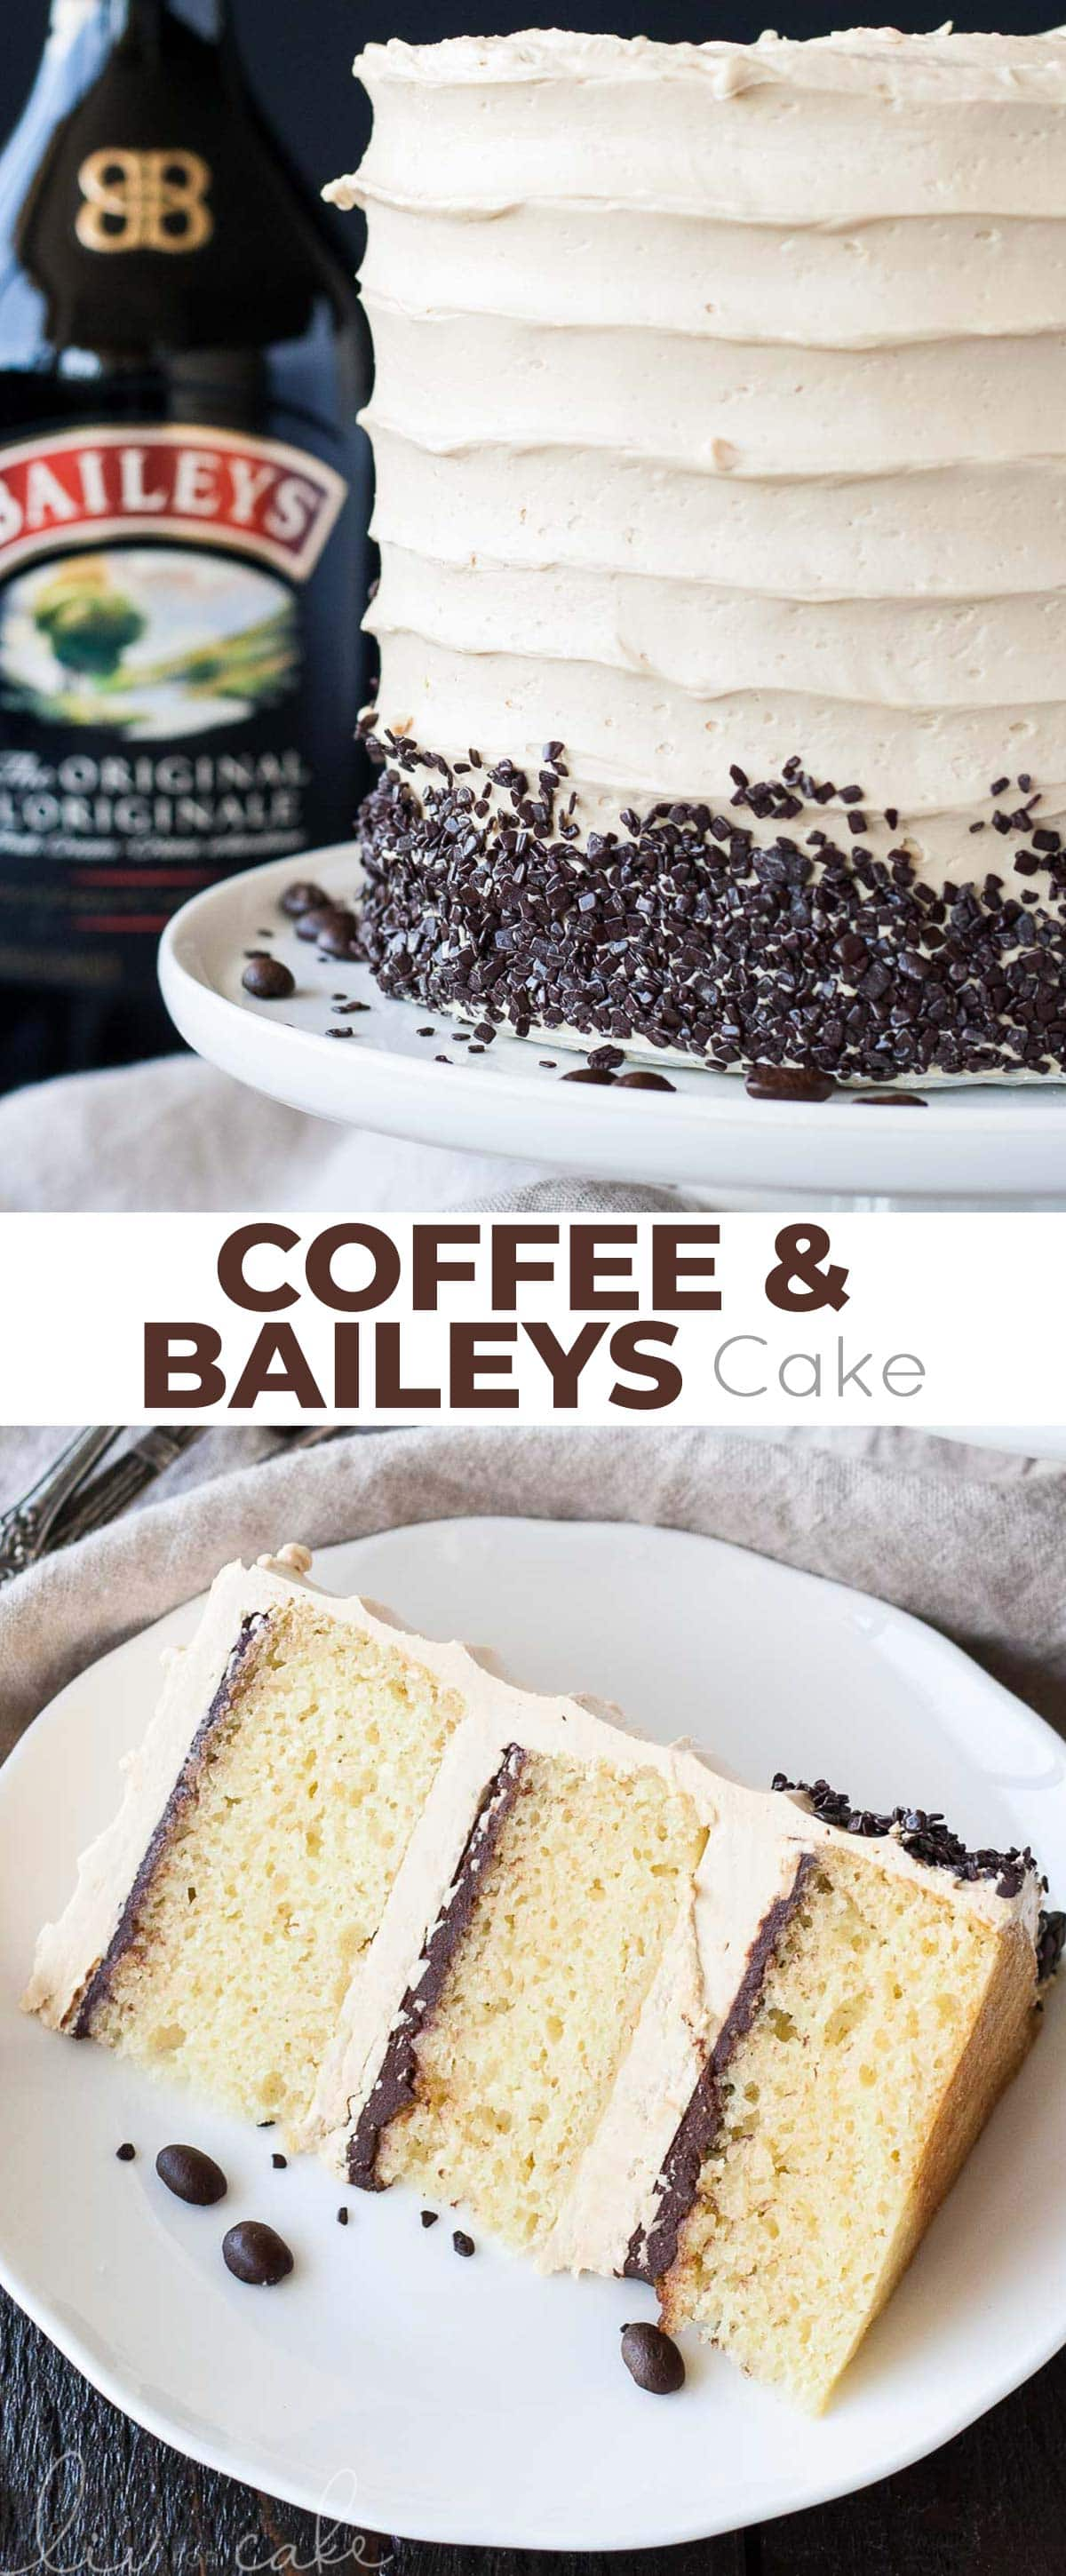 Coffee Baileys Cake photo collage